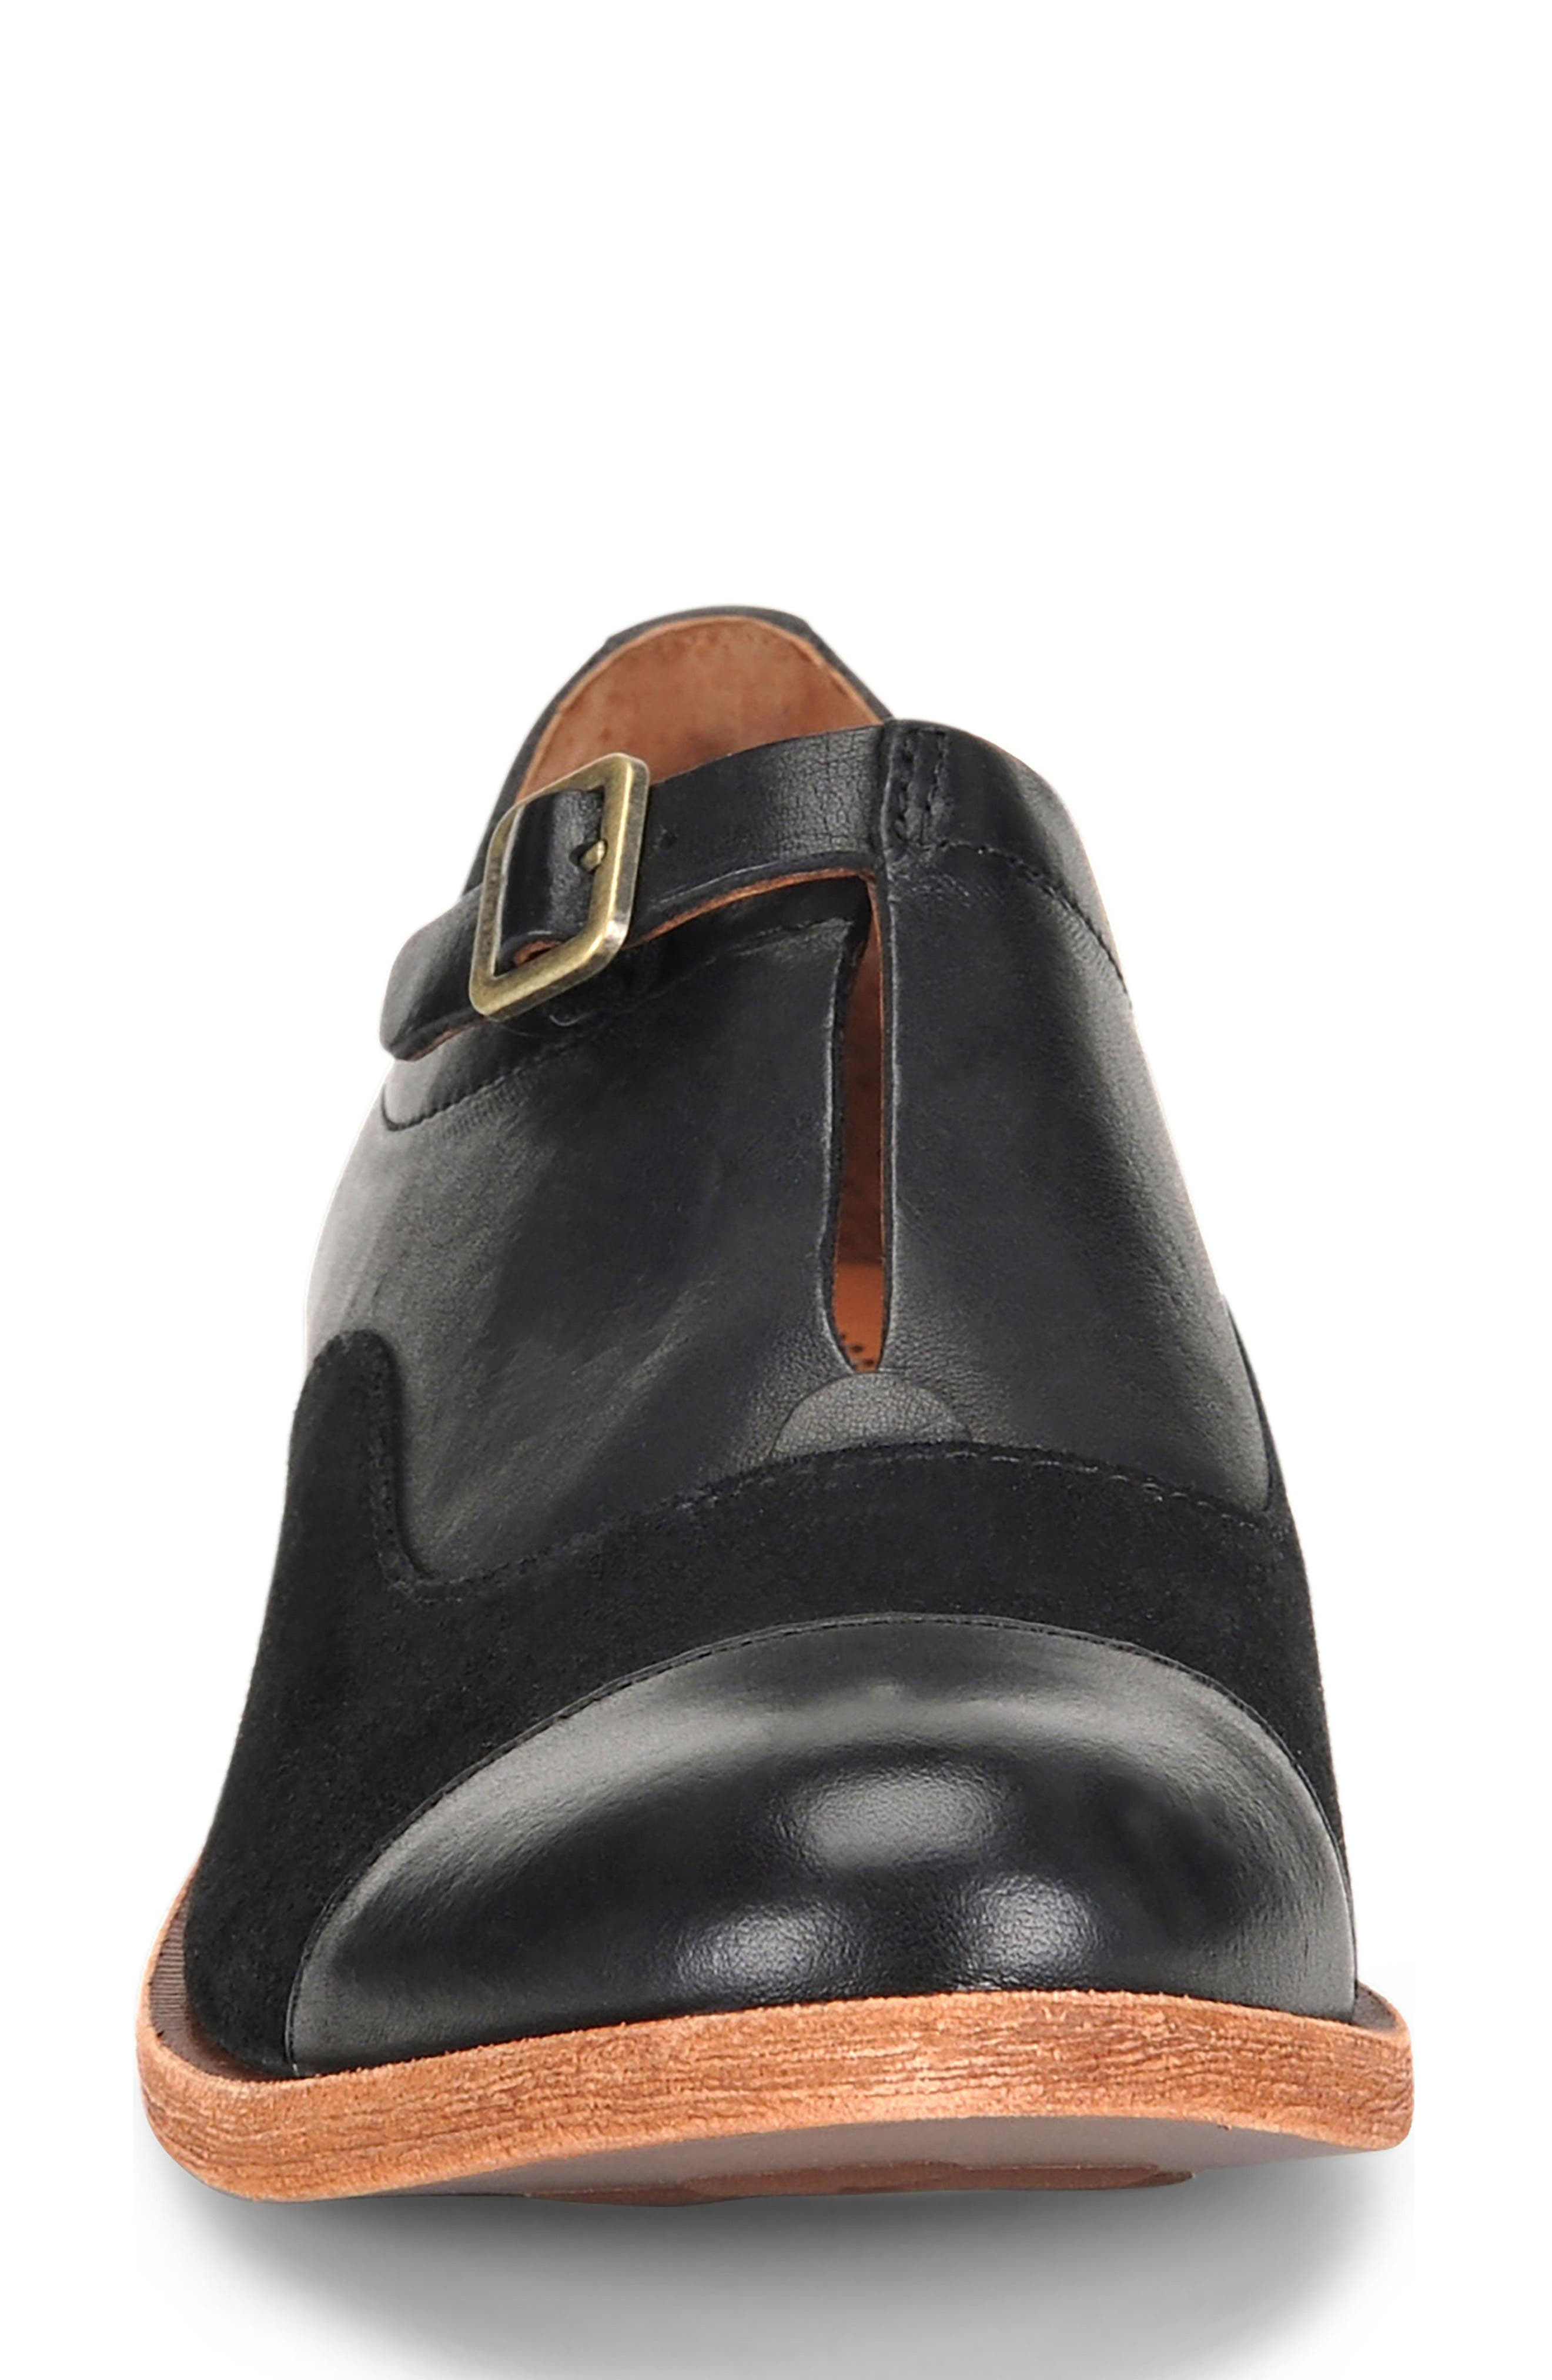 'Niseda' Oxford,                             Alternate thumbnail 7, color,                             Black Leather Suede Combo